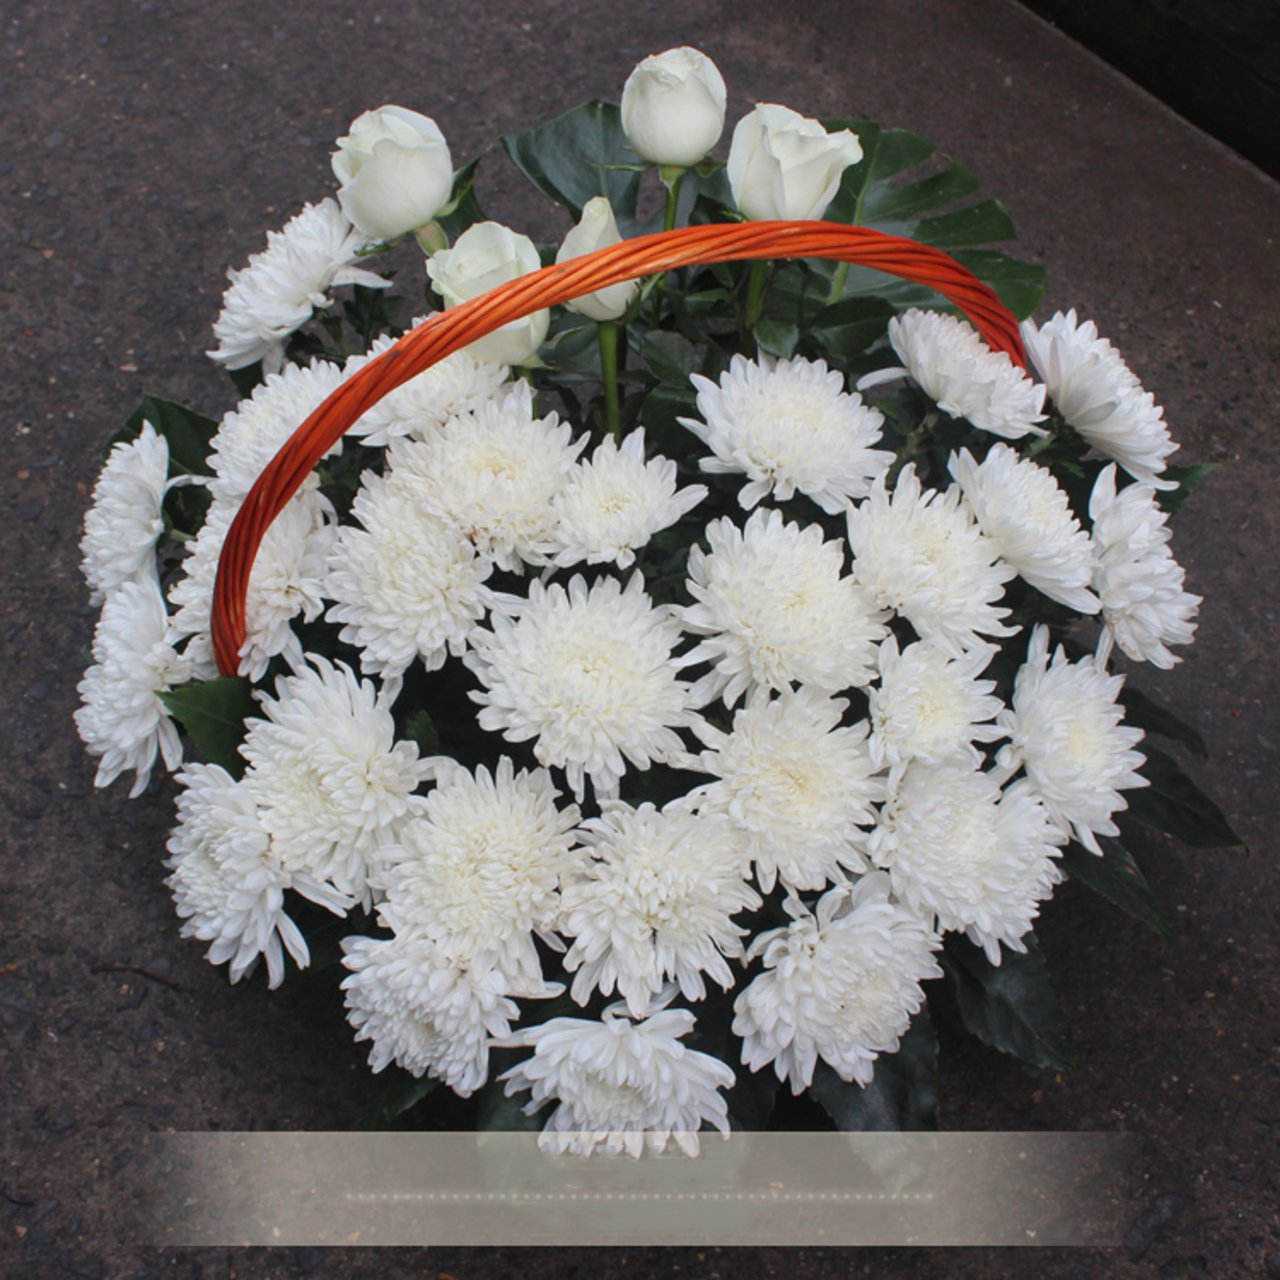 Martyrs never forget (memorial wreath)